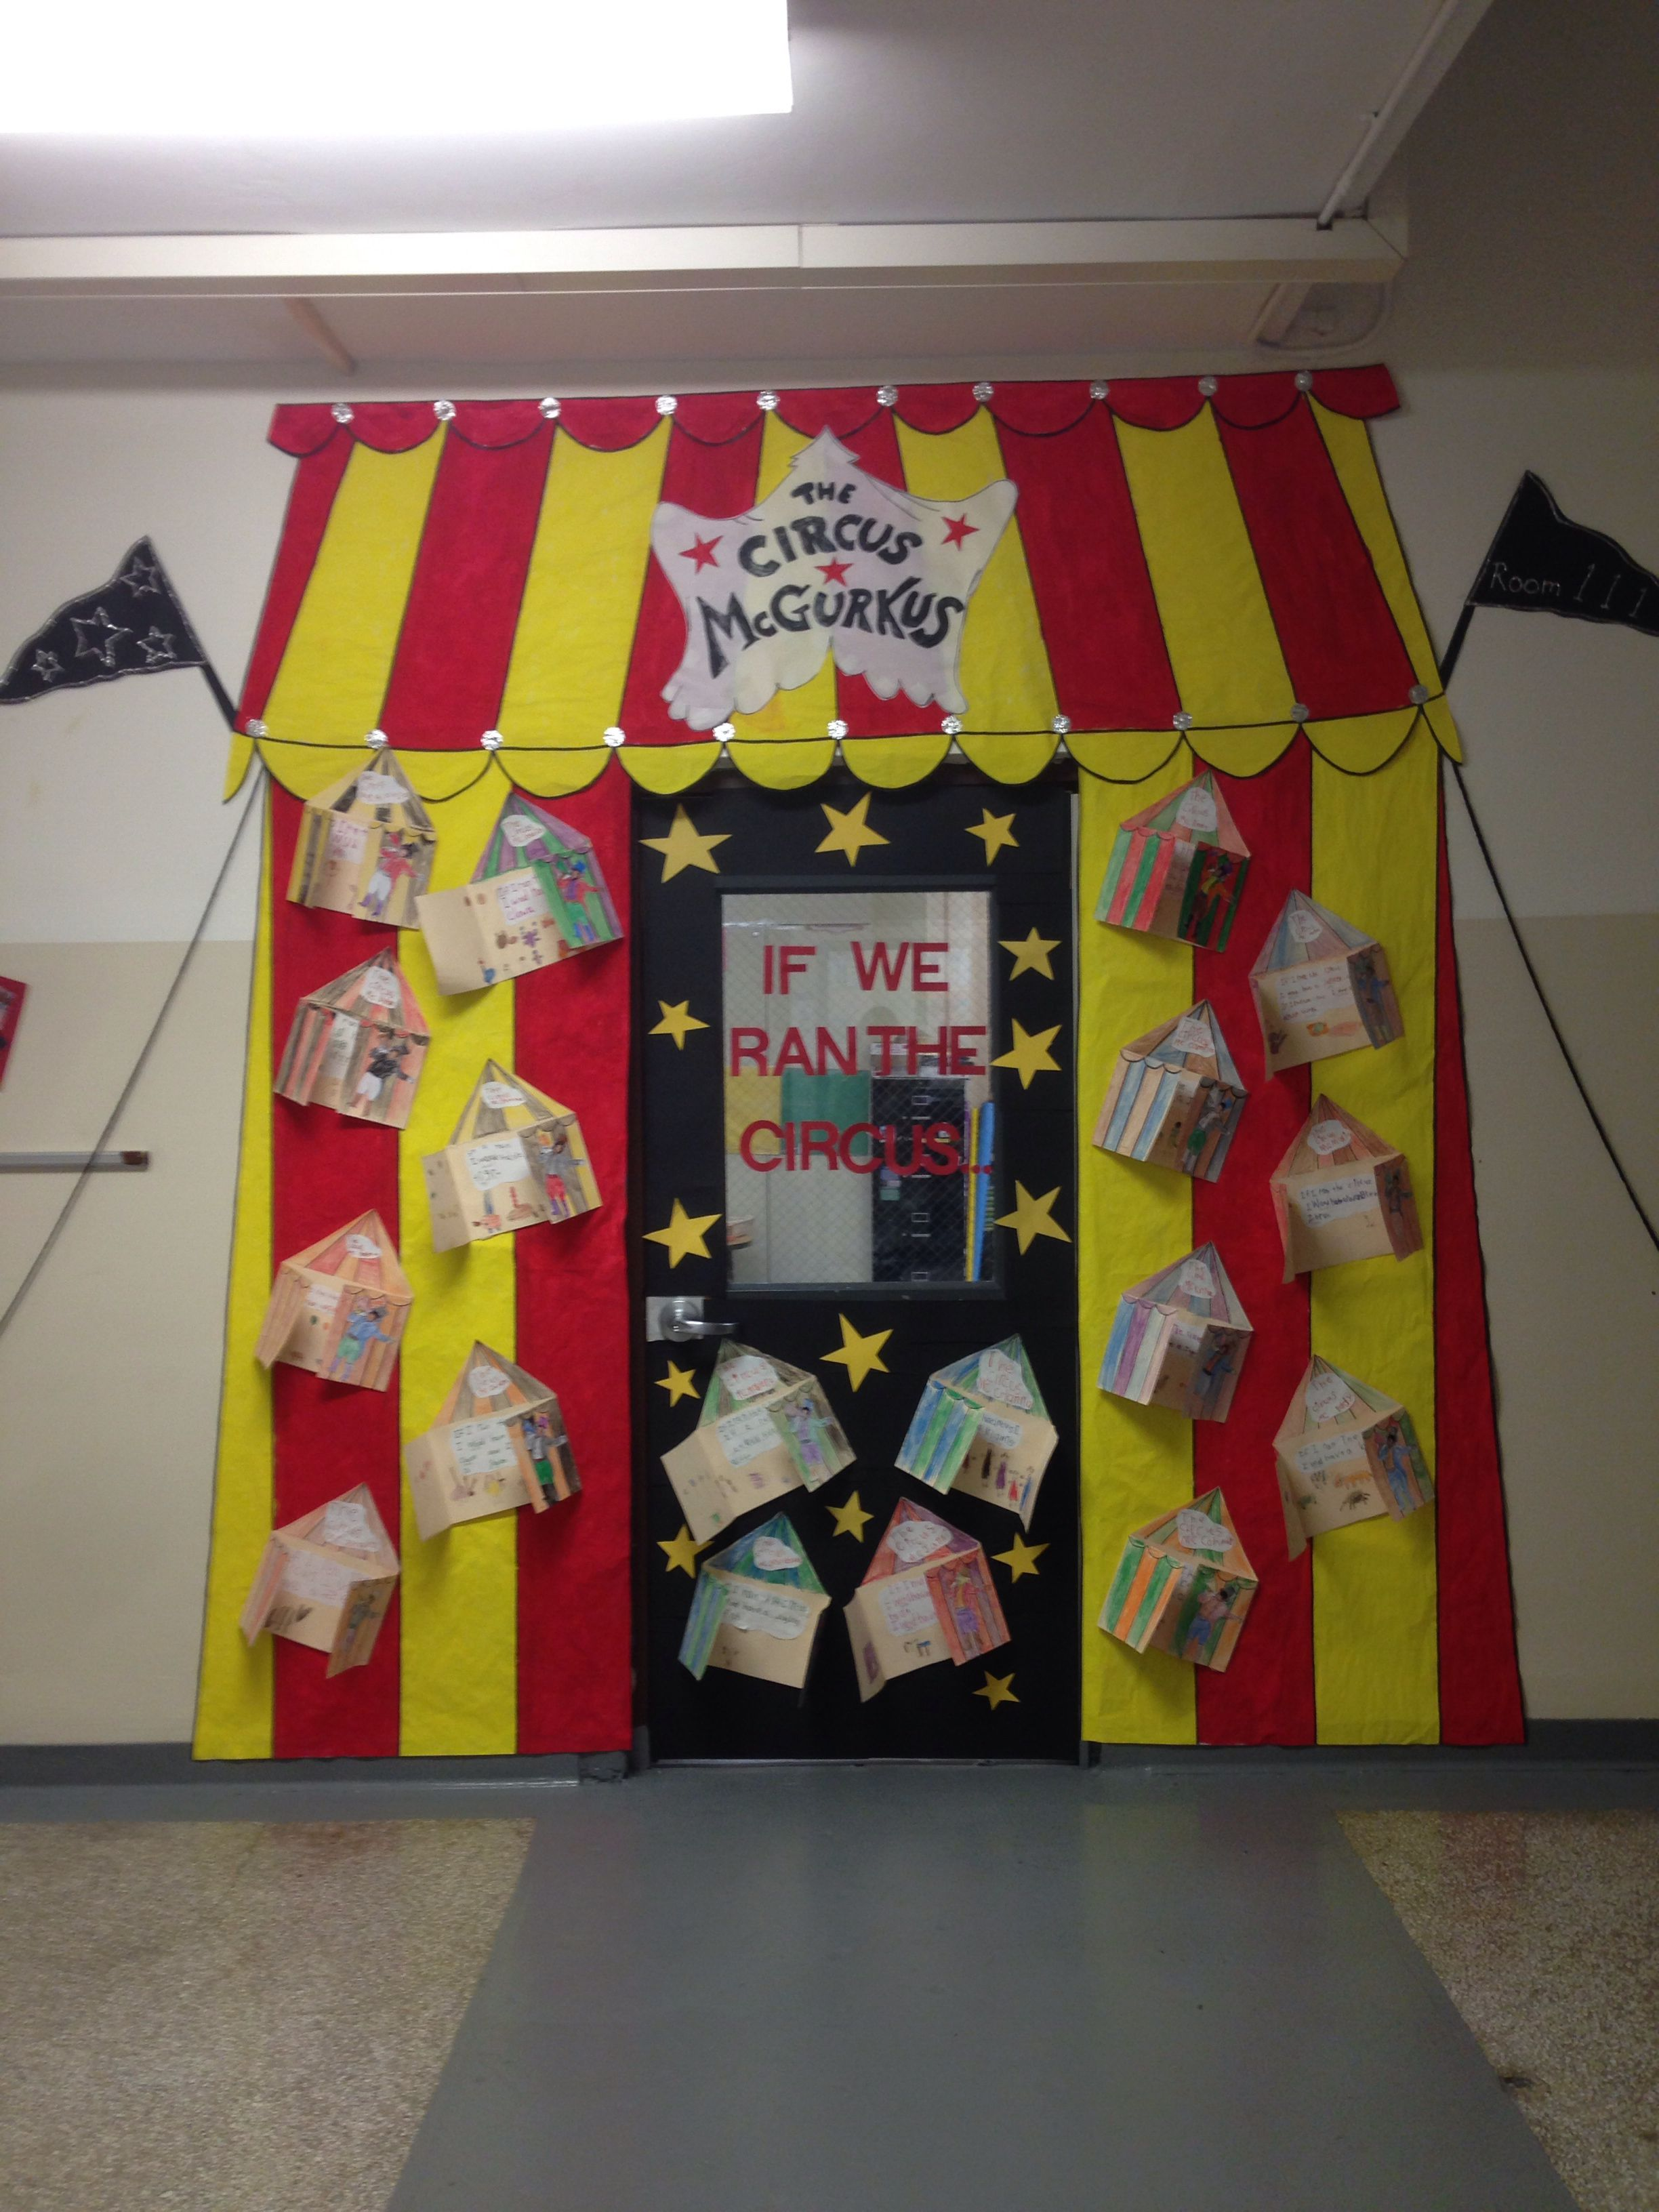 This circus tent classroom door display is fun and colorful.